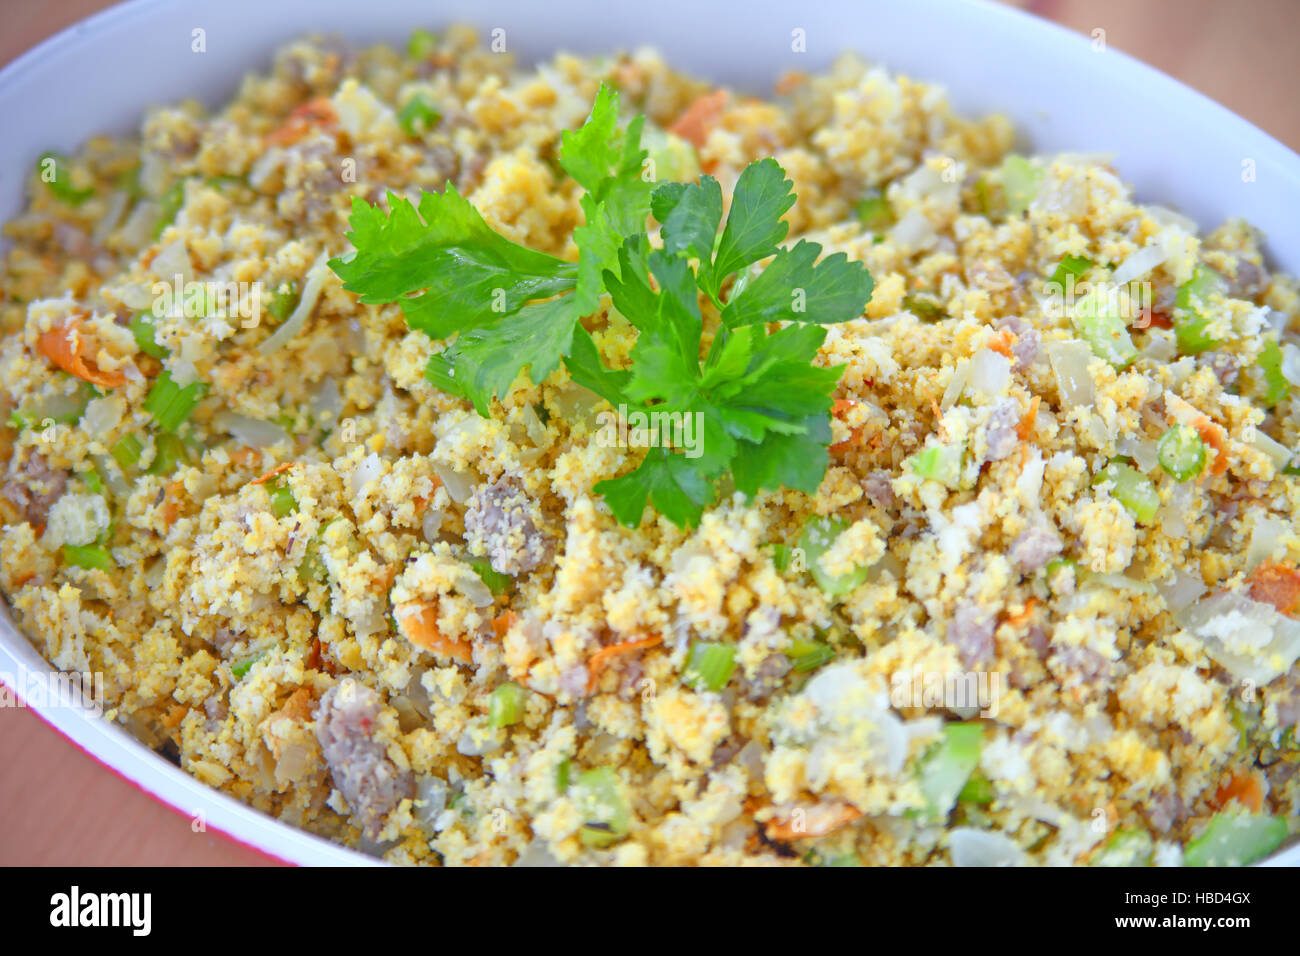 Traditional Thanksgiving side dish of crumbled cornbread, celery, onion and sausage - Stock Image